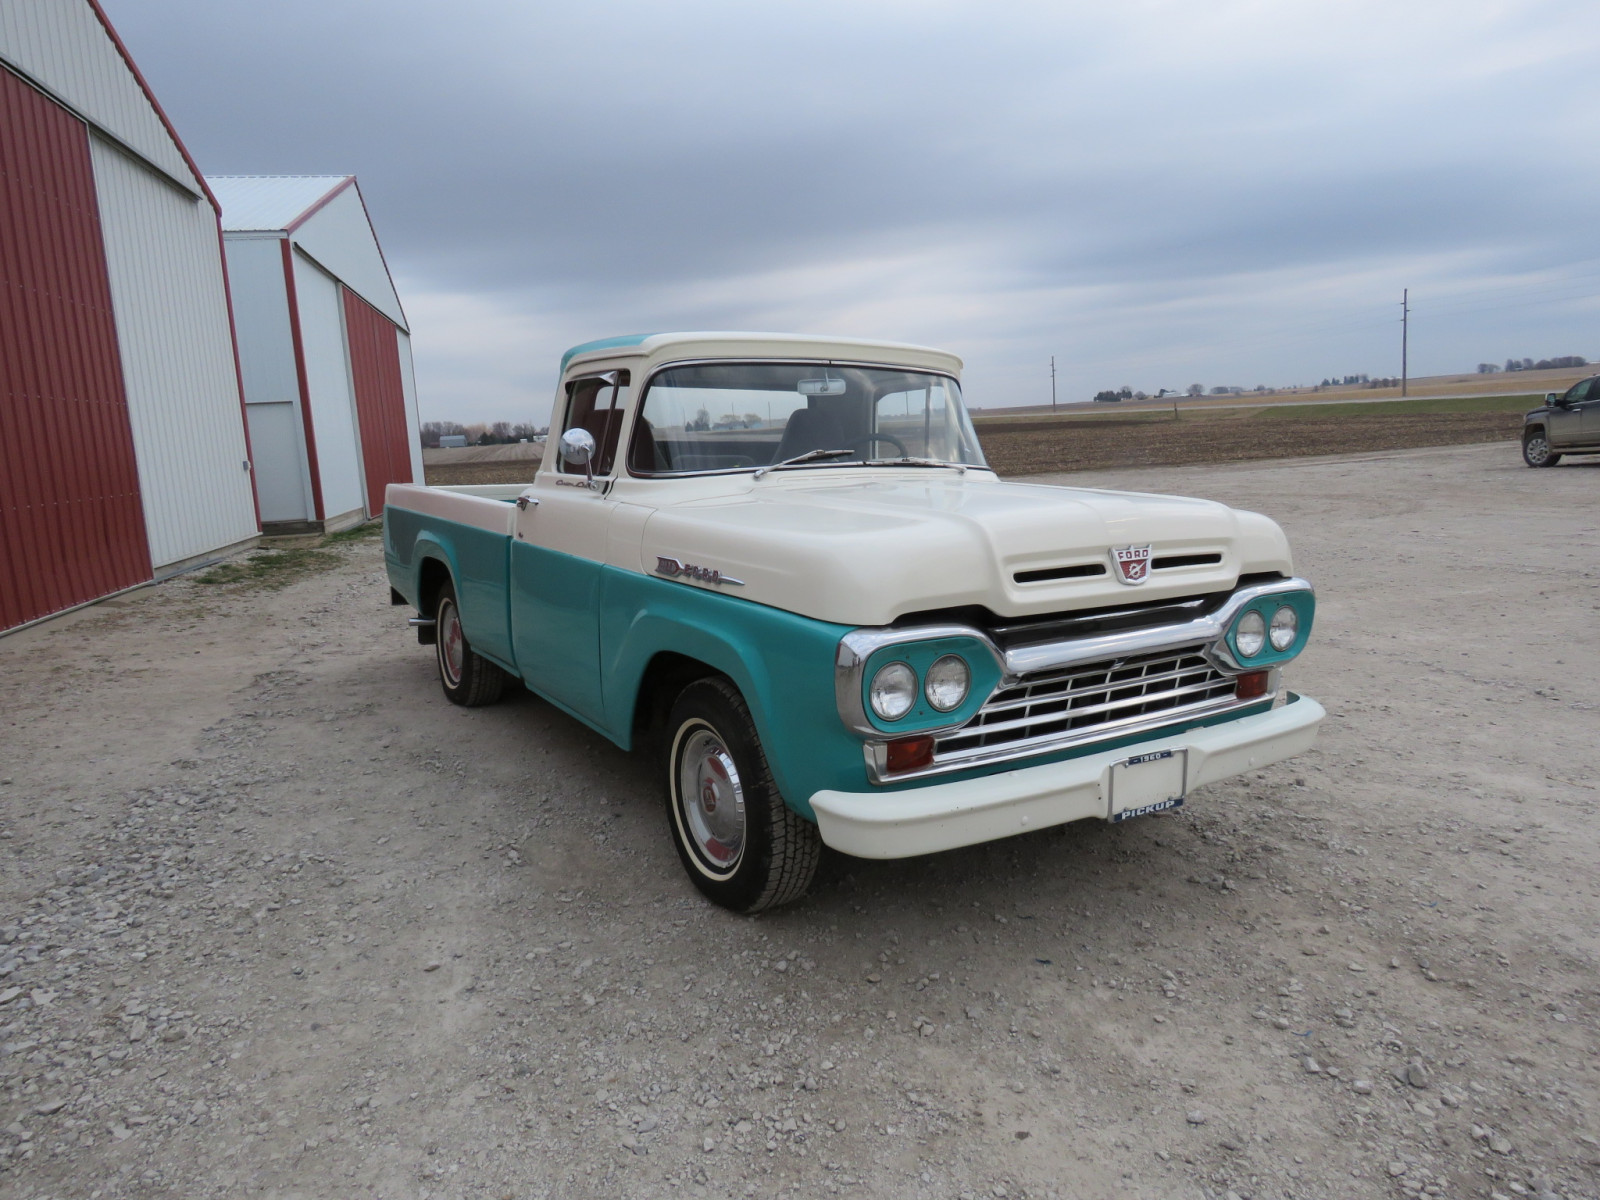 1960 Ford F100 Pickup - Image 4